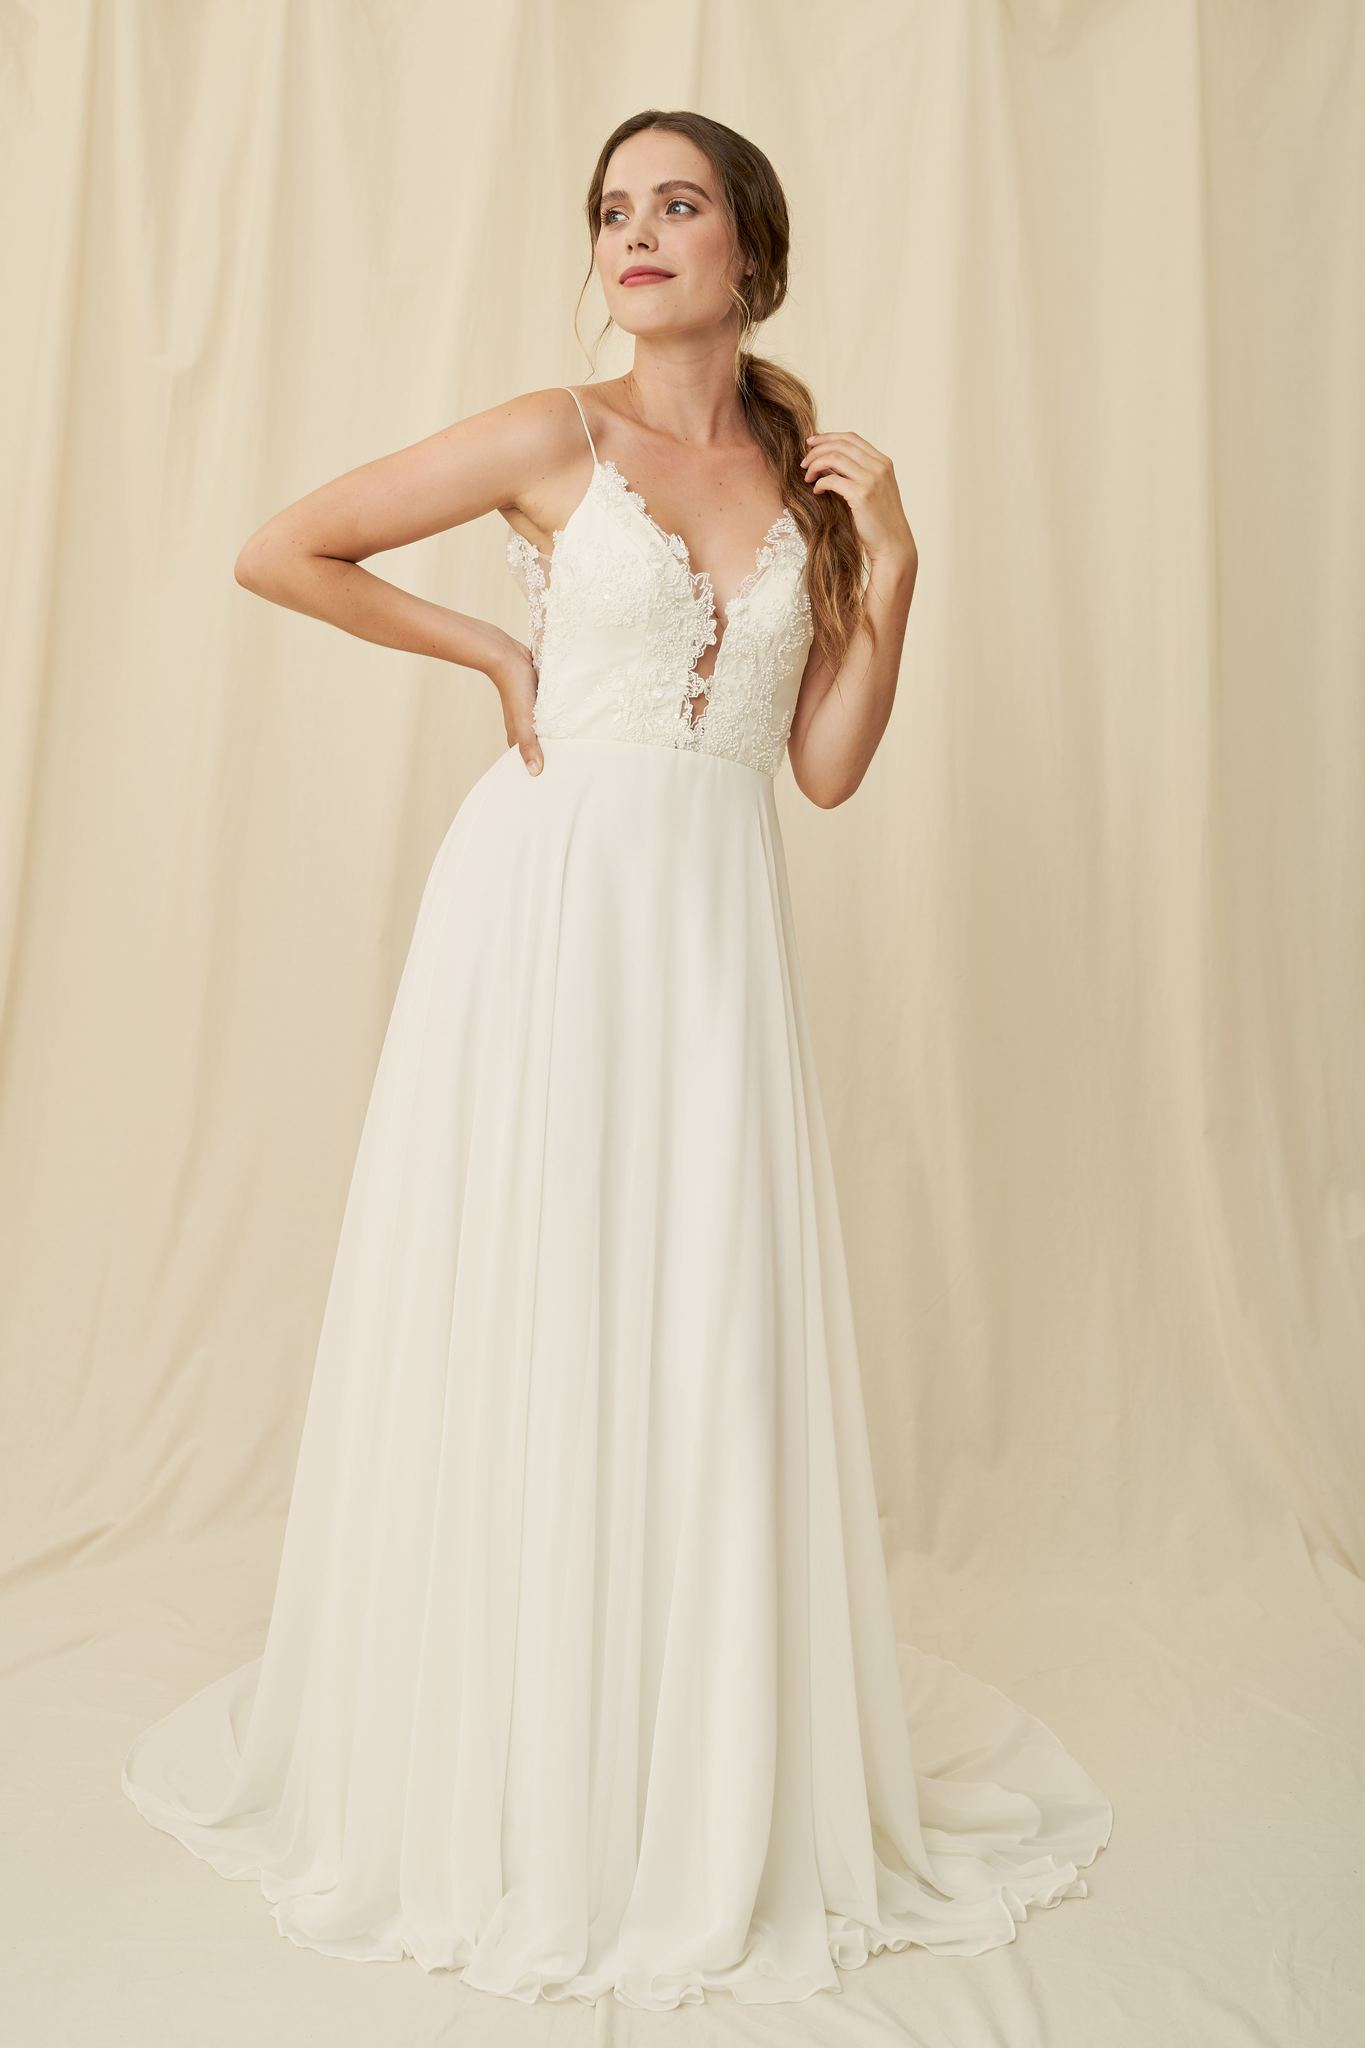 Flowy wedding dress with a low-cut lace bodice and sheer scoopback